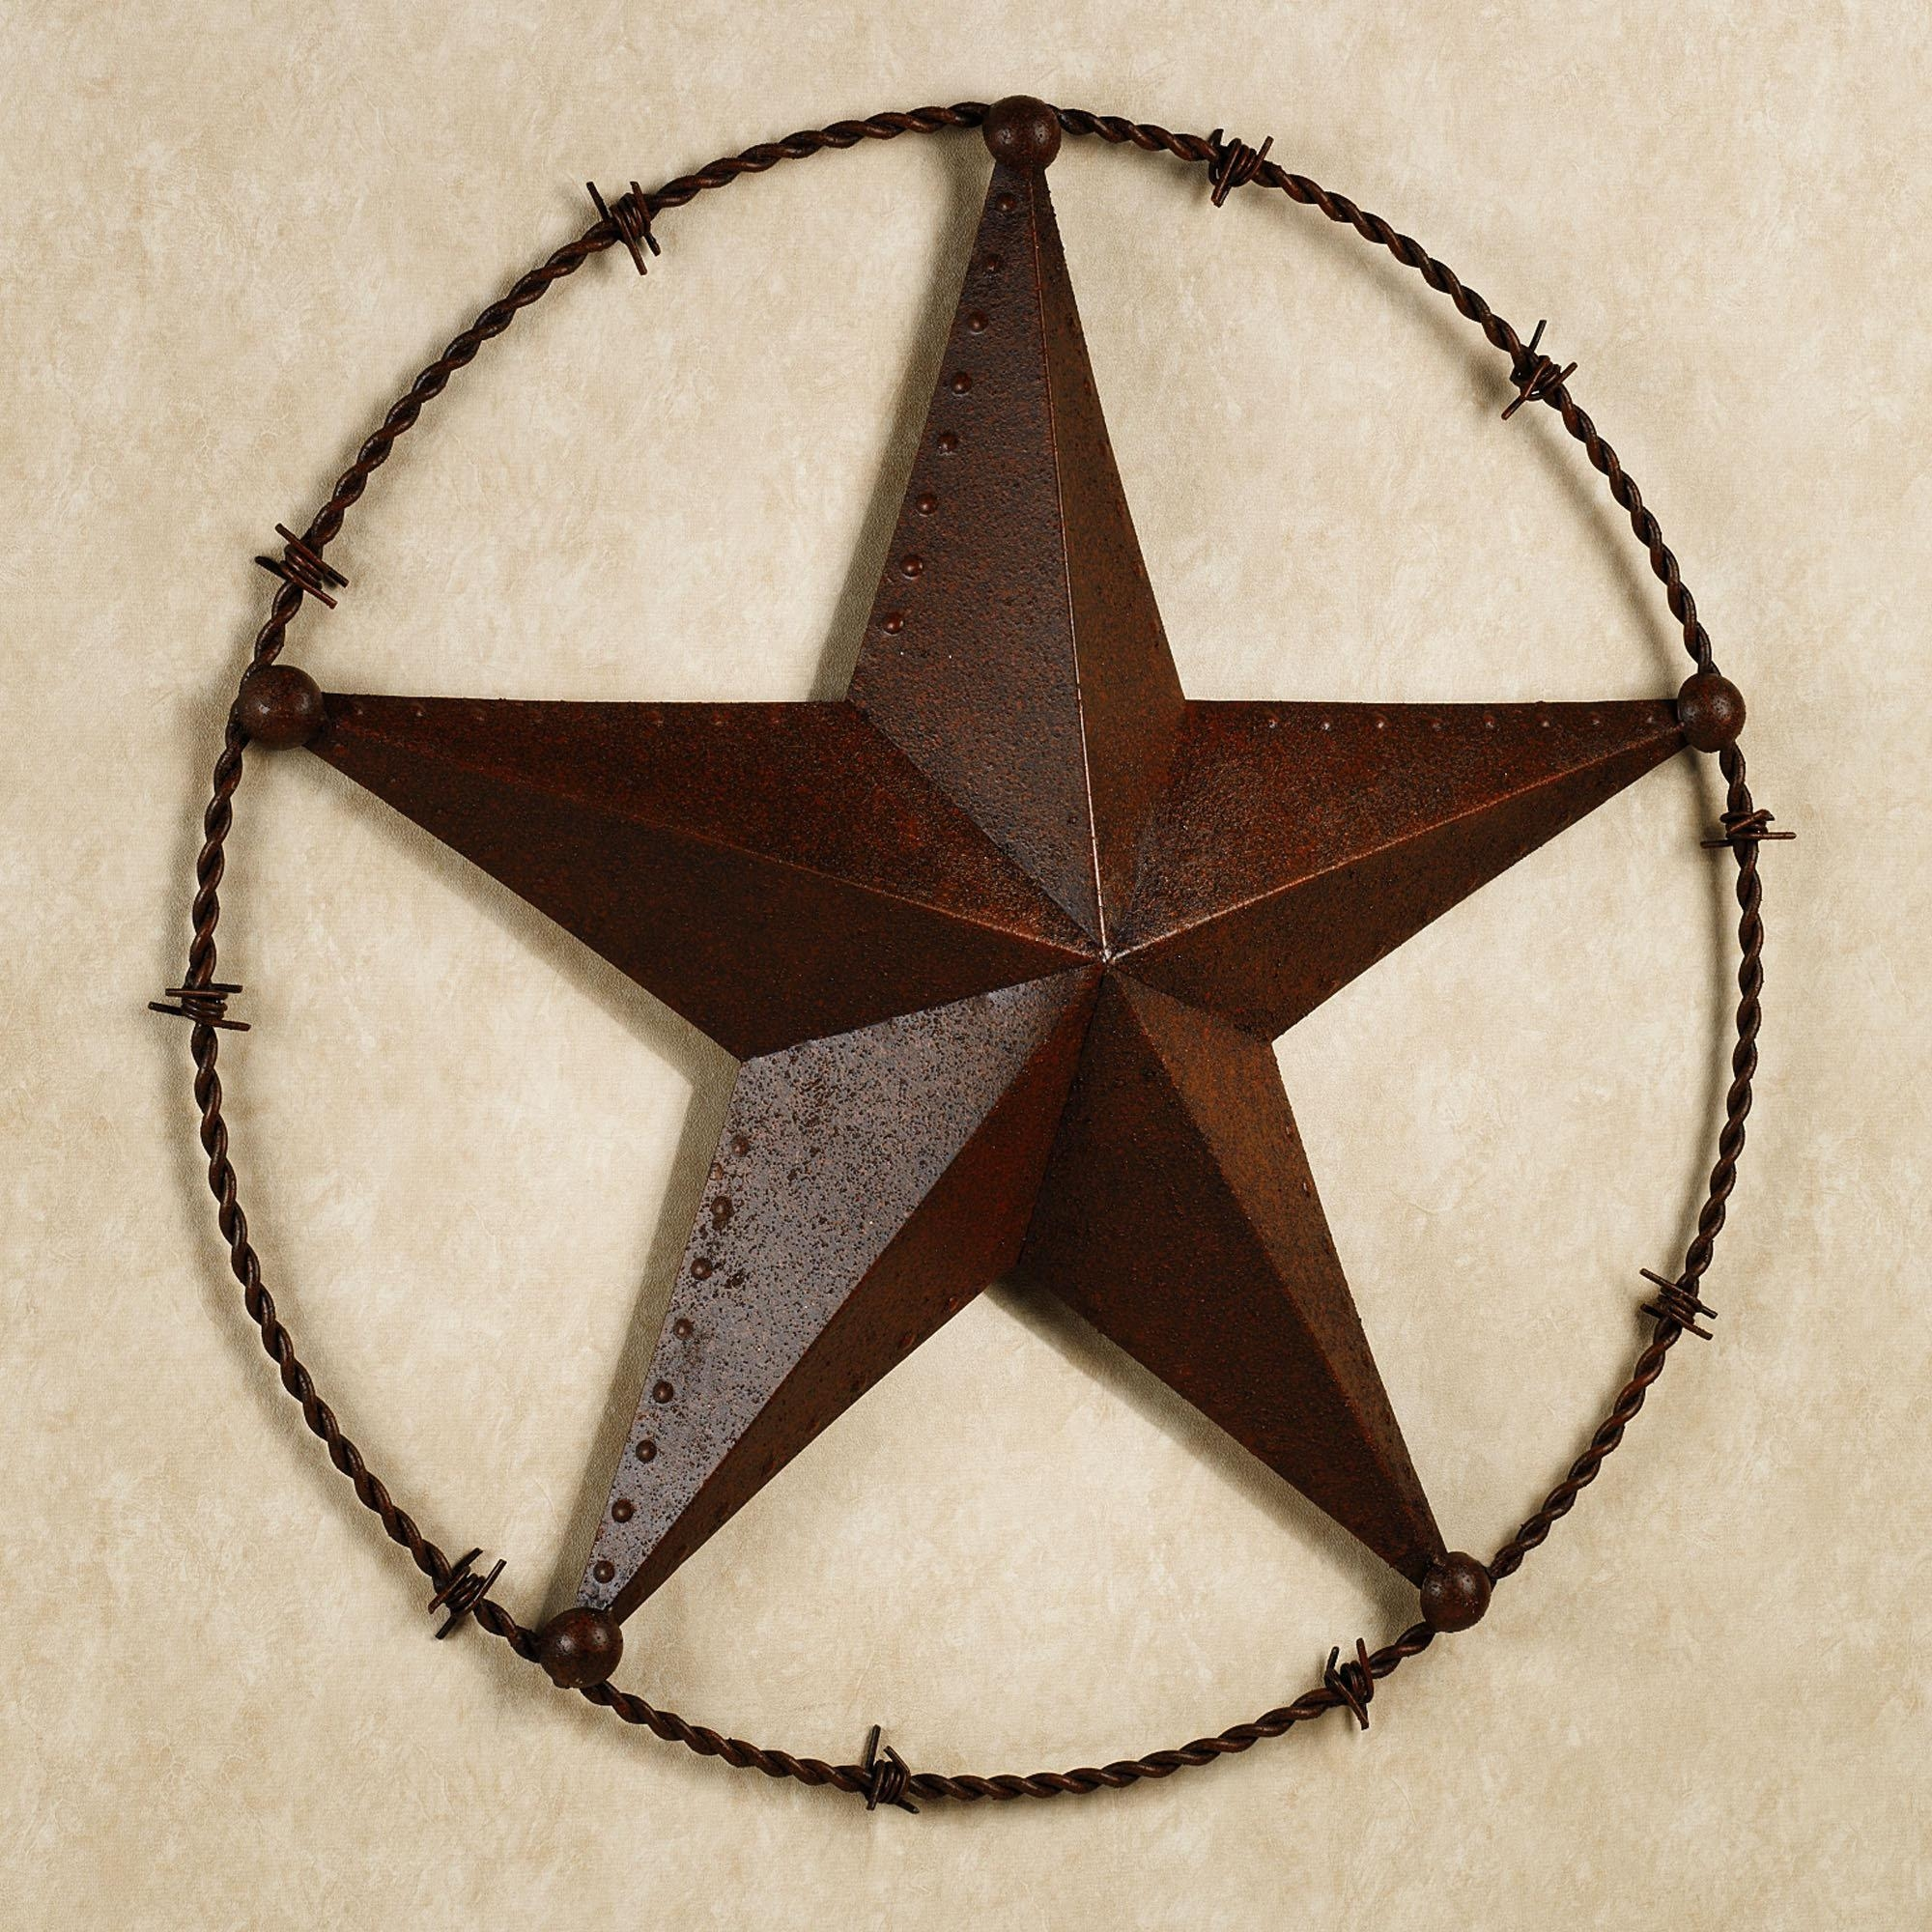 20 photos texas star wall art wall art ideas. Black Bedroom Furniture Sets. Home Design Ideas